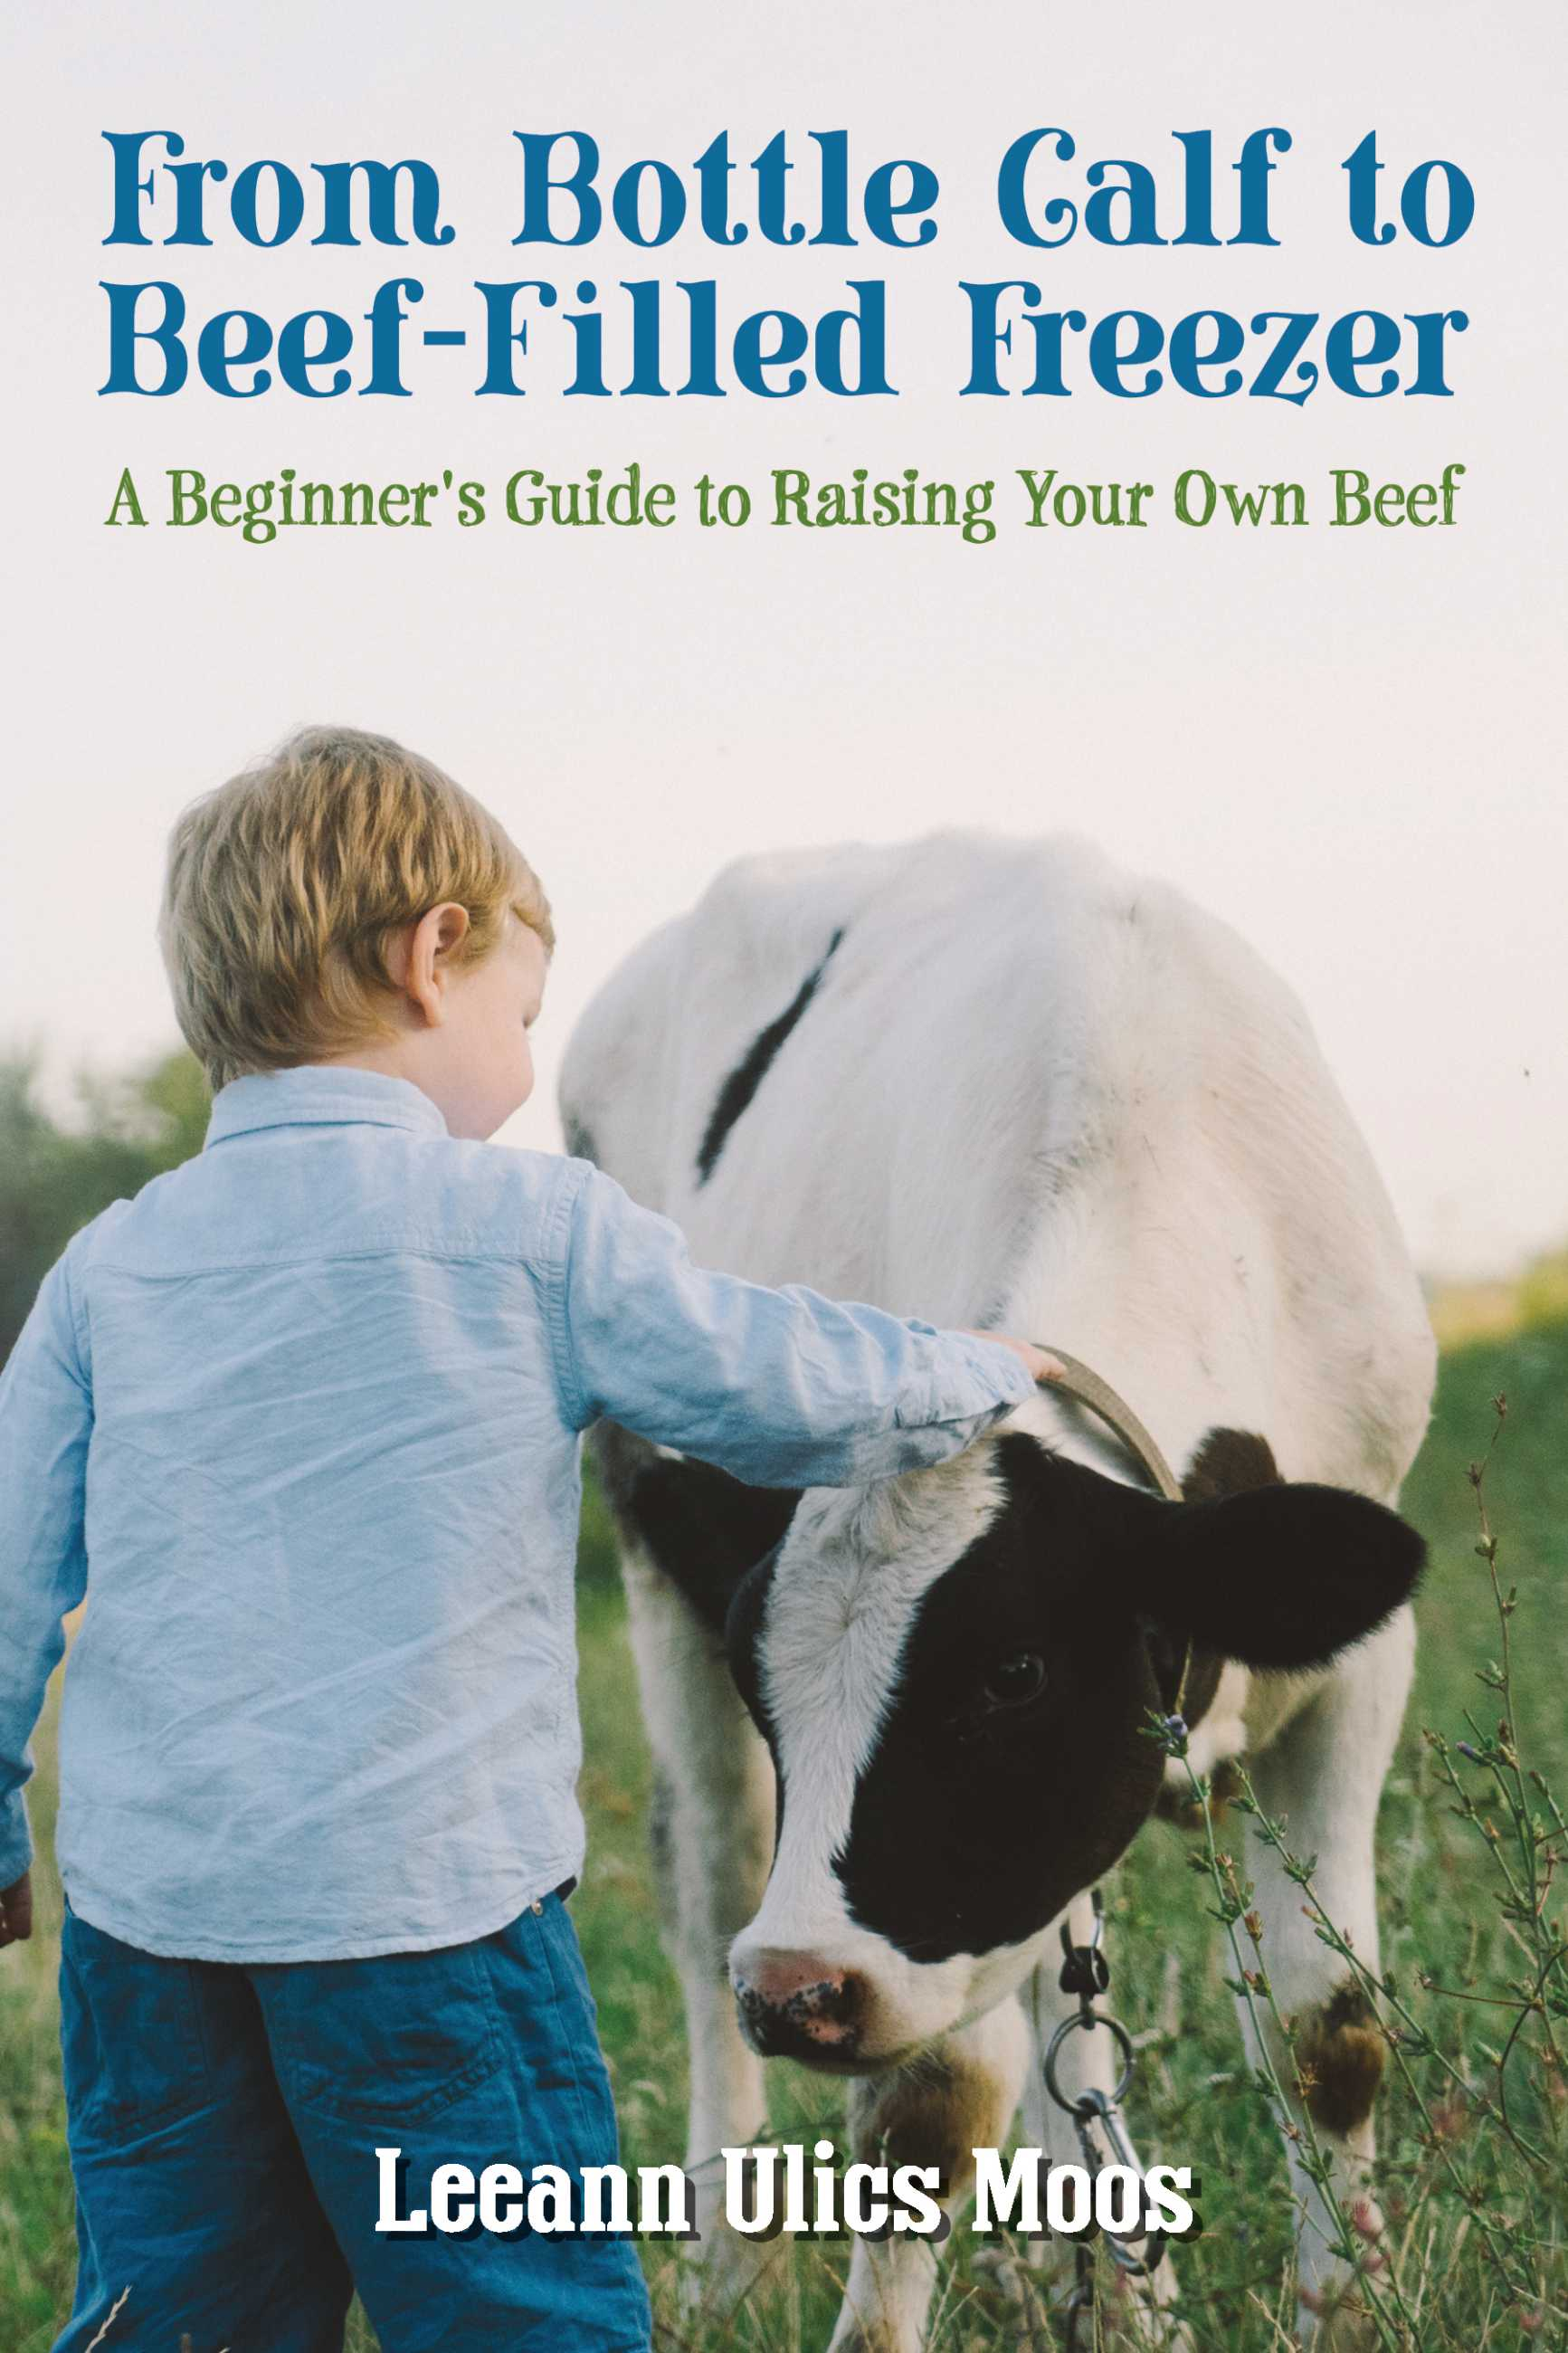 From Bottle Calf to Beef Filled Freezer: A Beginner's Guide to Raising Your Own Beef